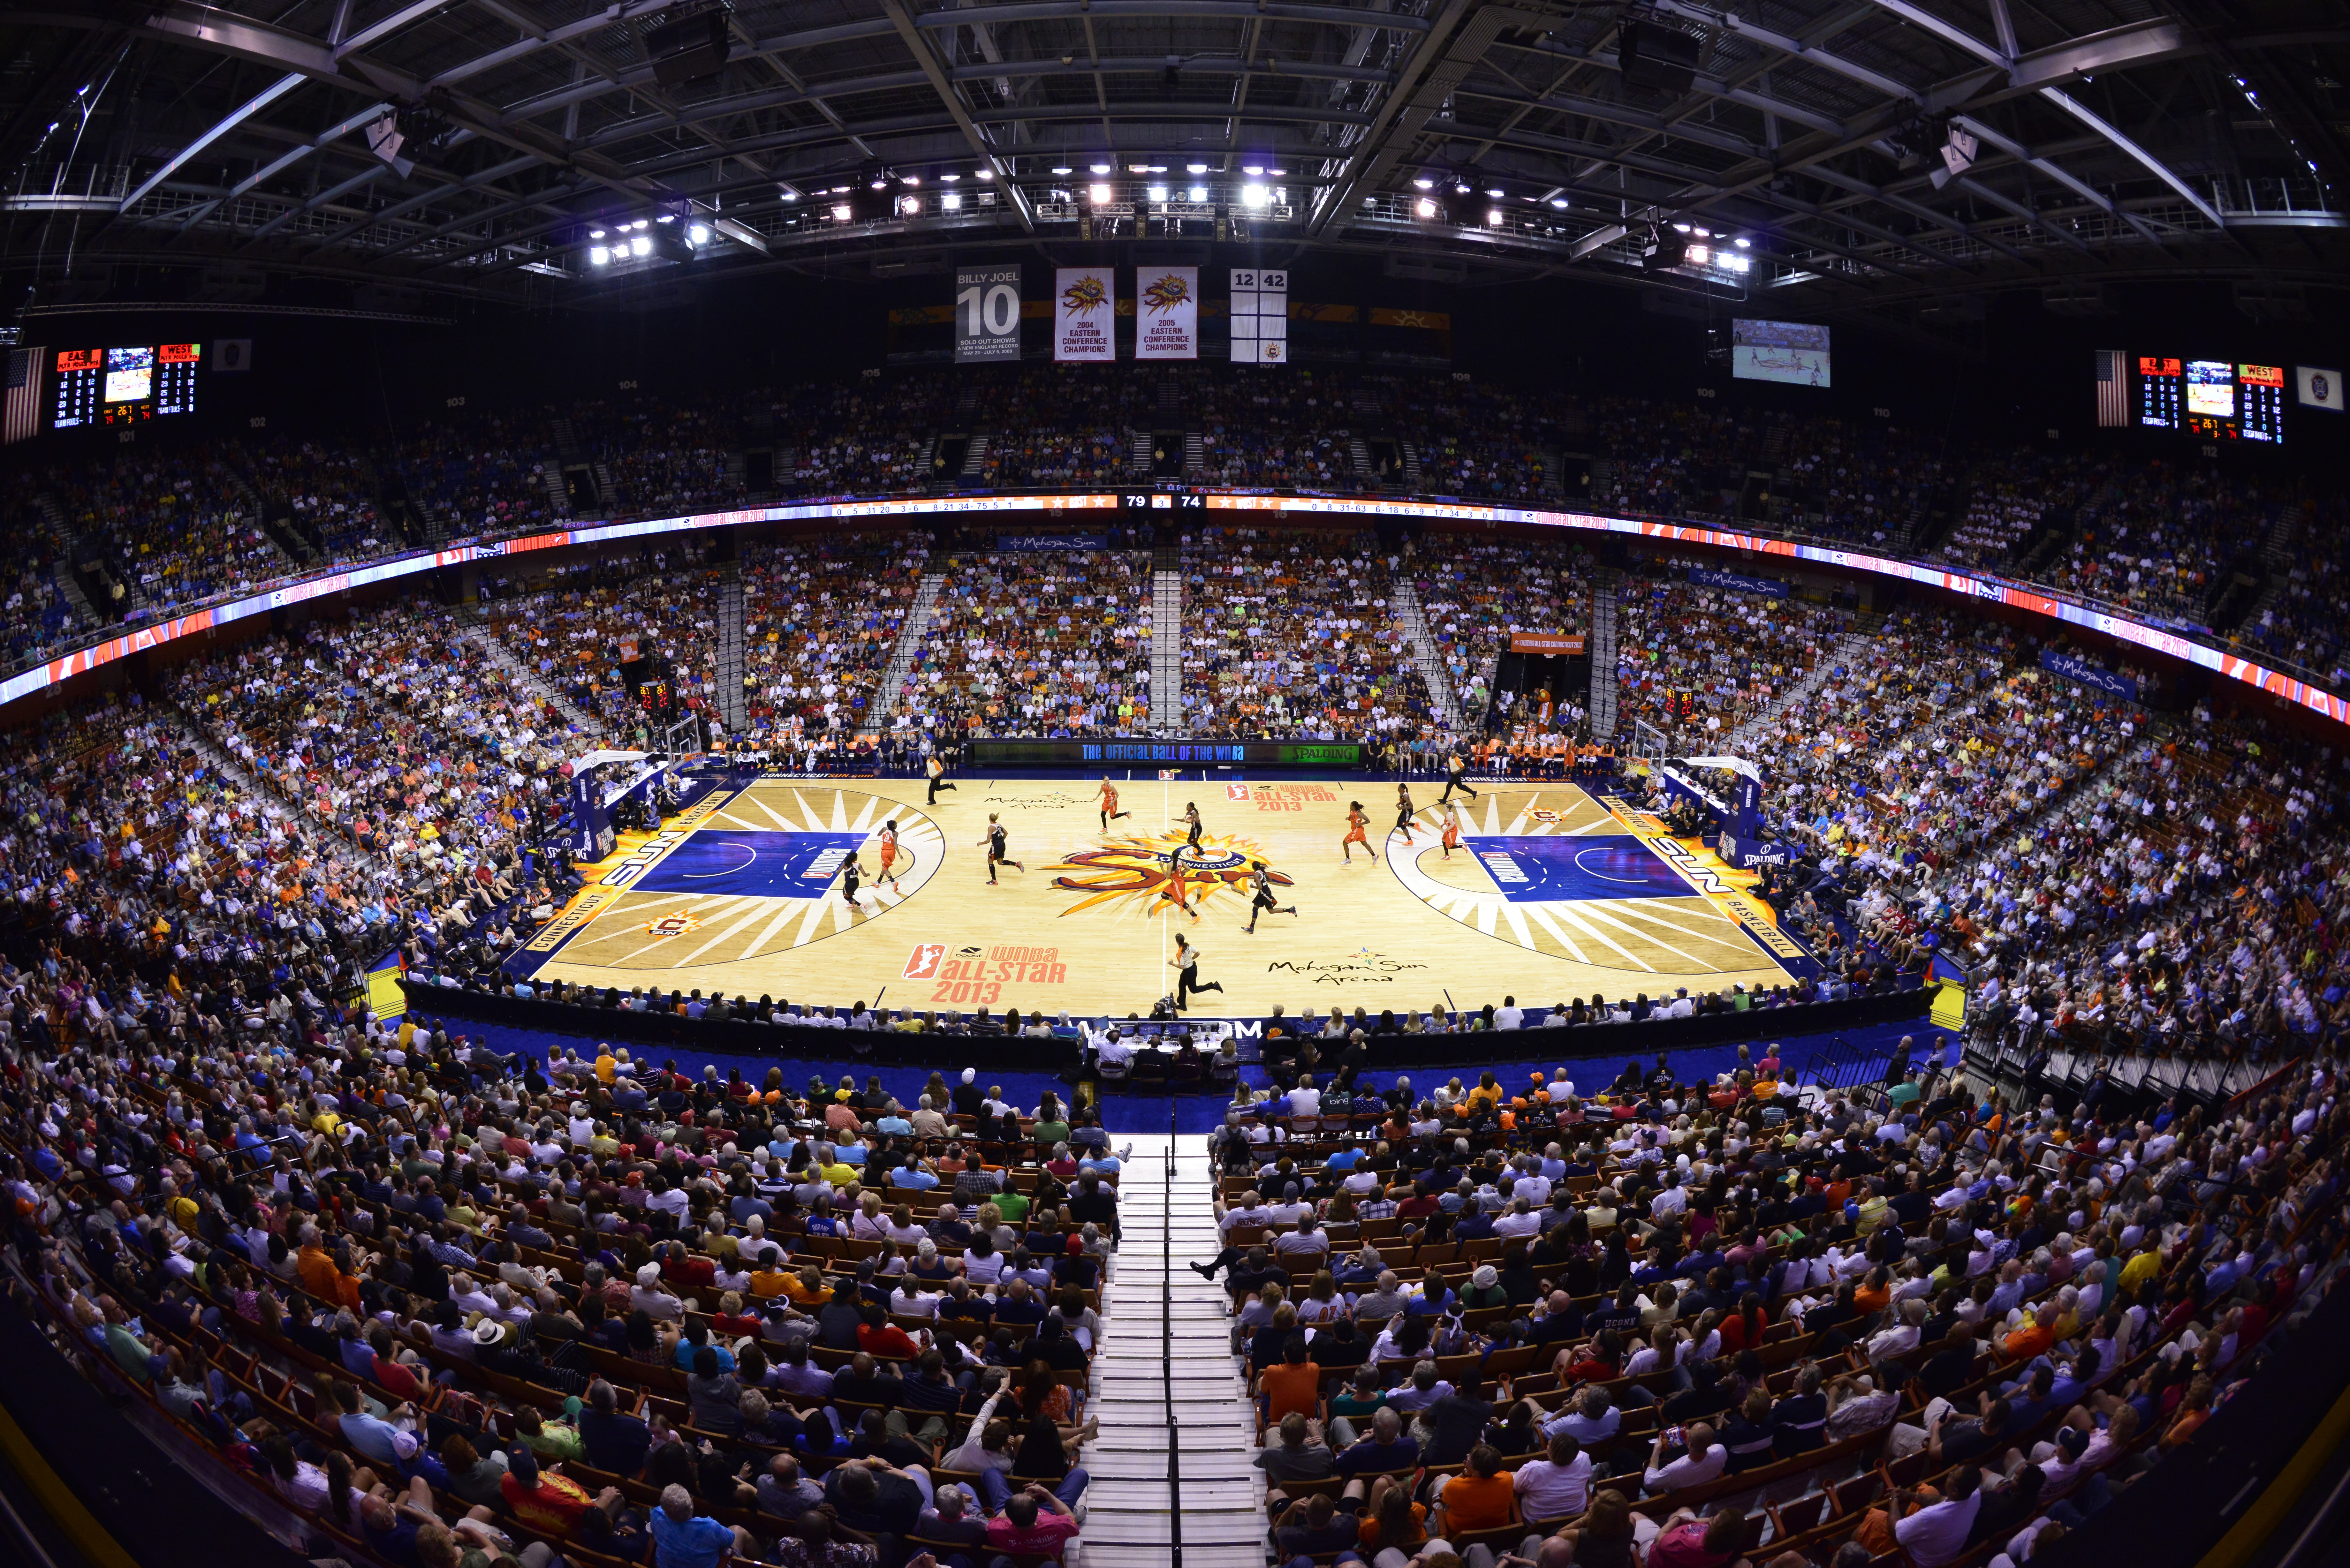 The WNBA Connecticut Sun has named a few doctors from UConn Health Orthopedics and Sports Medicine to be Team Physicians to care for the players on and off the basketball court (Copyright 2013 NBAE. Photo by David Dow/NBAE via Getty Images).